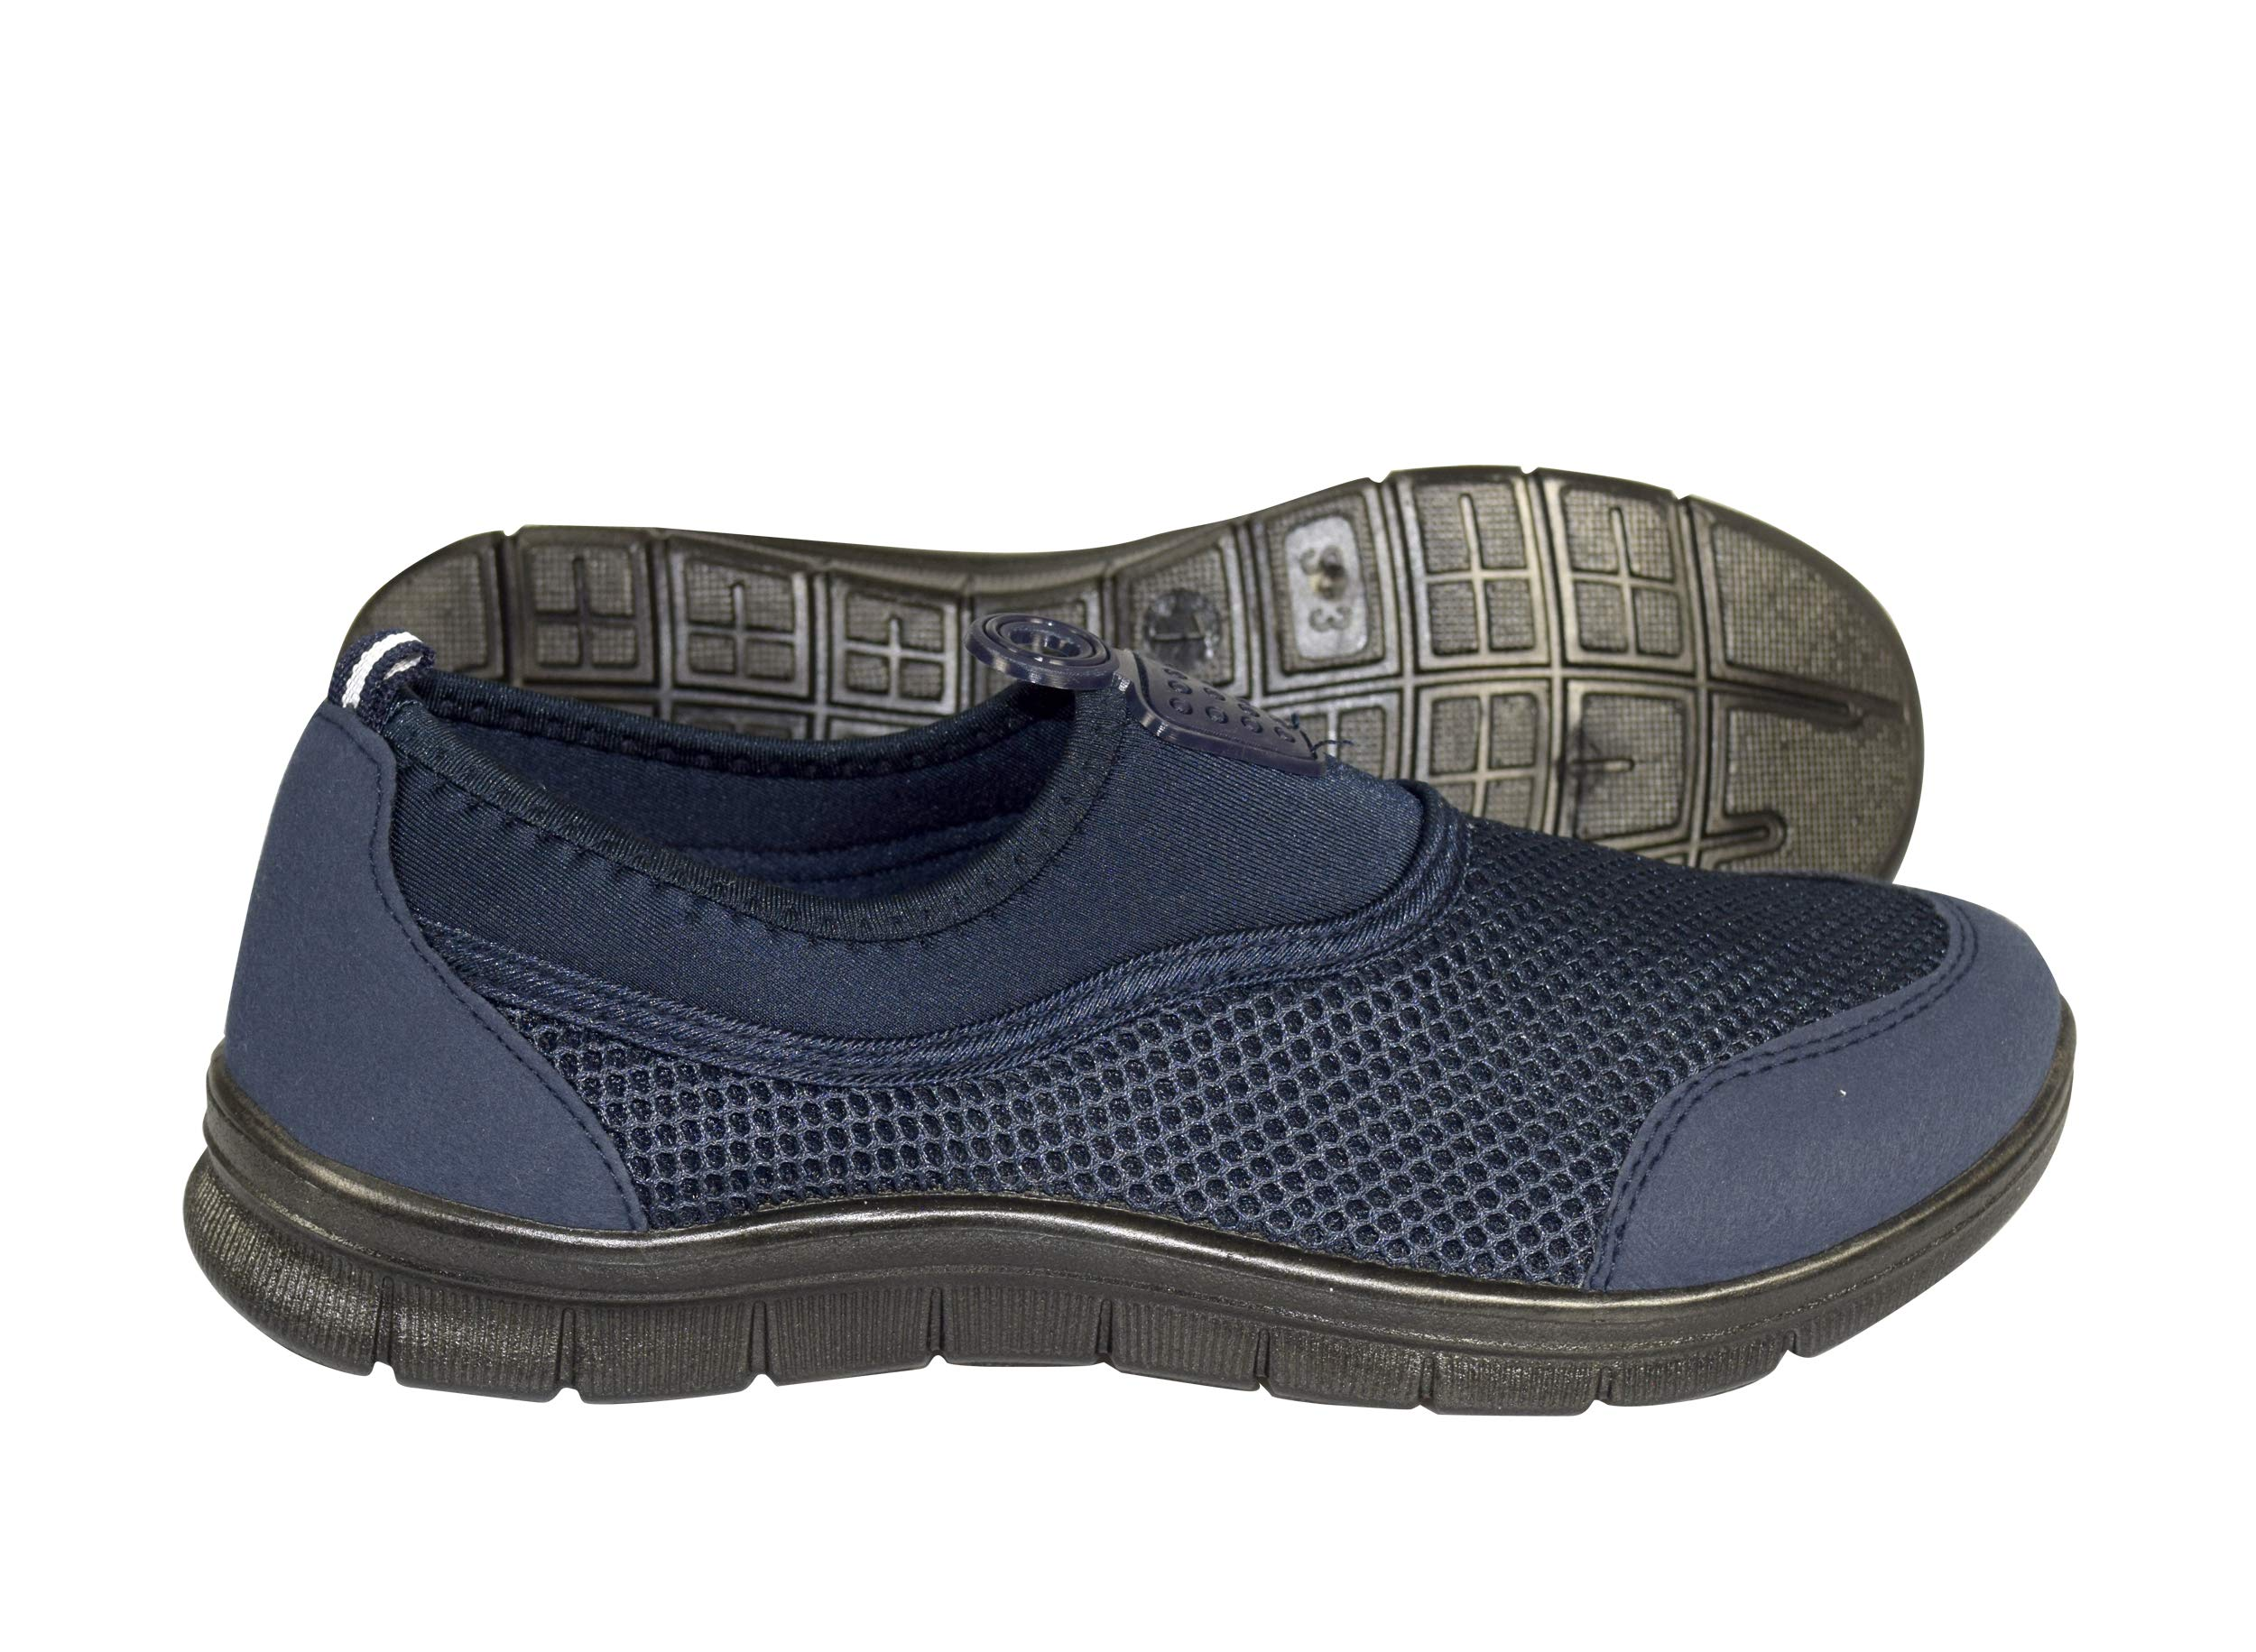 Peach Couture Easy Slip On No Lace Women's Sport Shoes Running Lightweight Sneakers Navy, 10